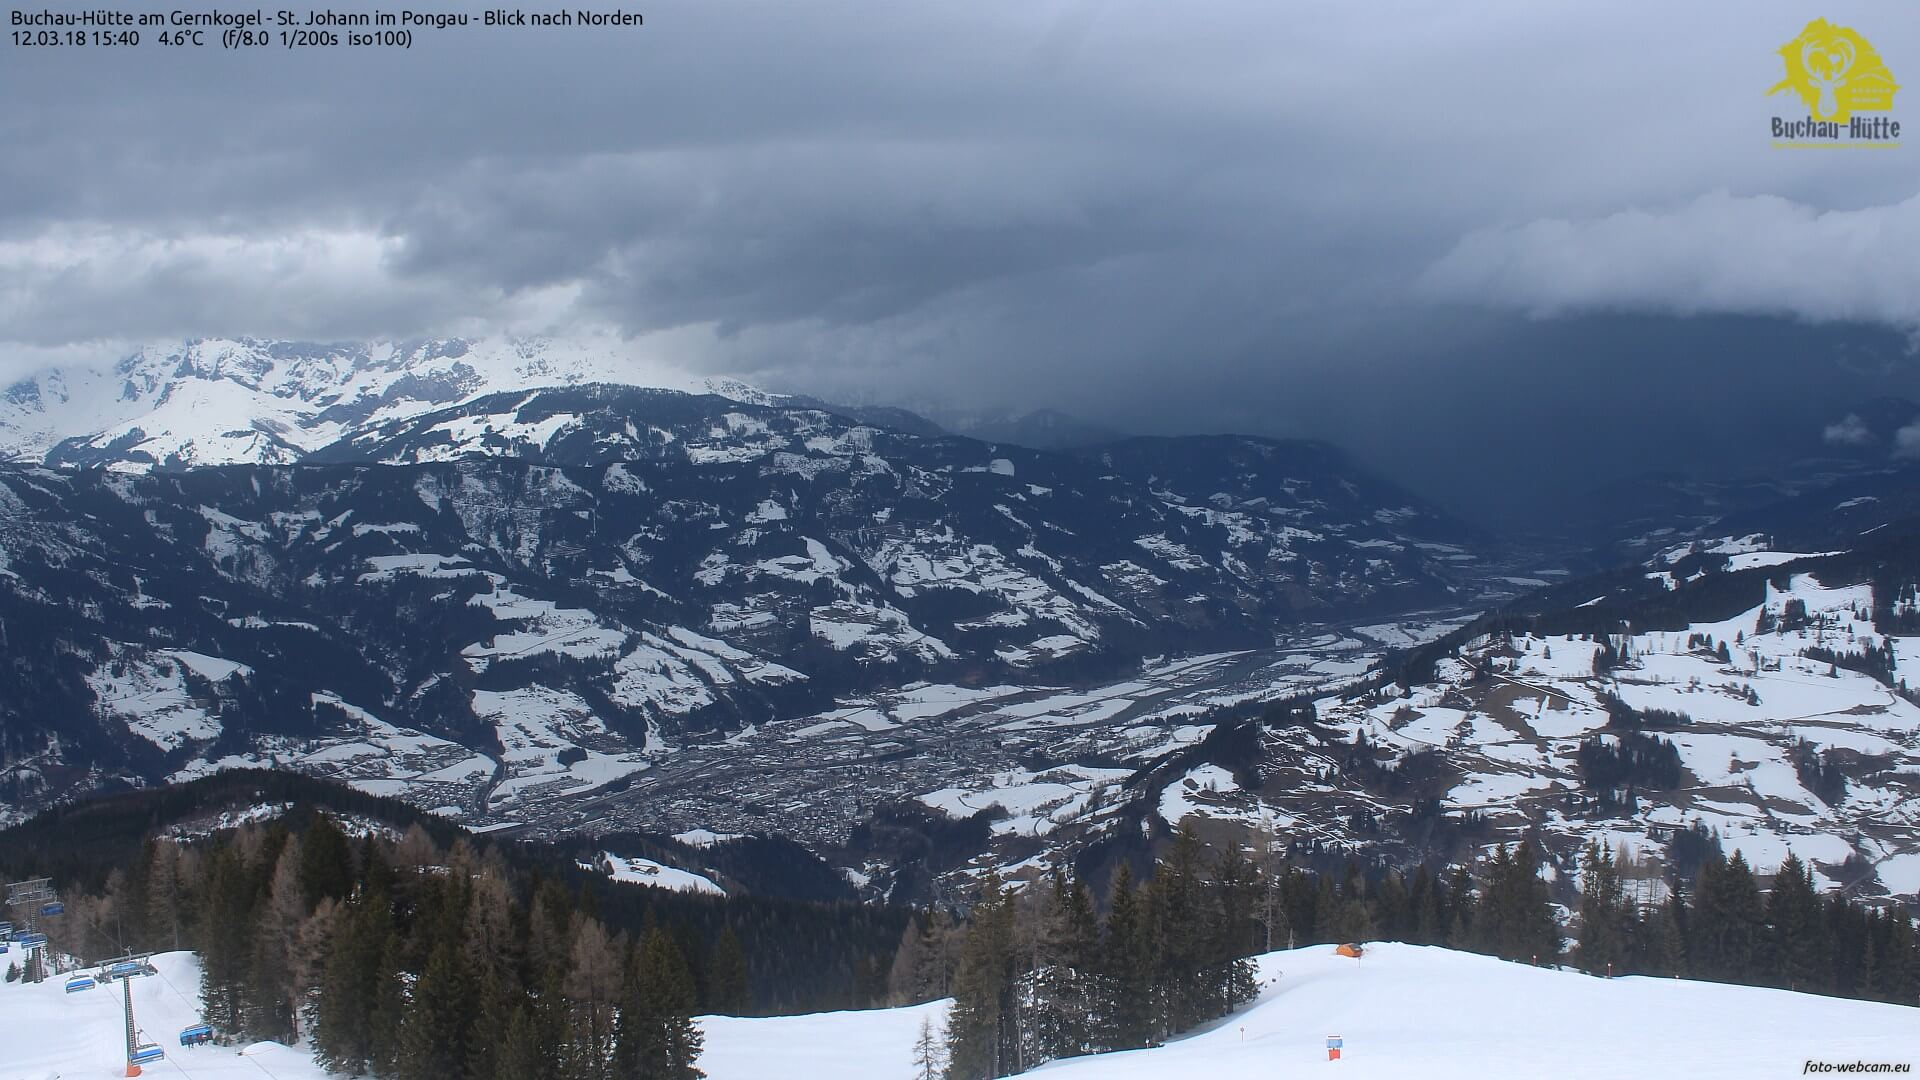 Gewitter in den Alpen. © foto-webcam.eu